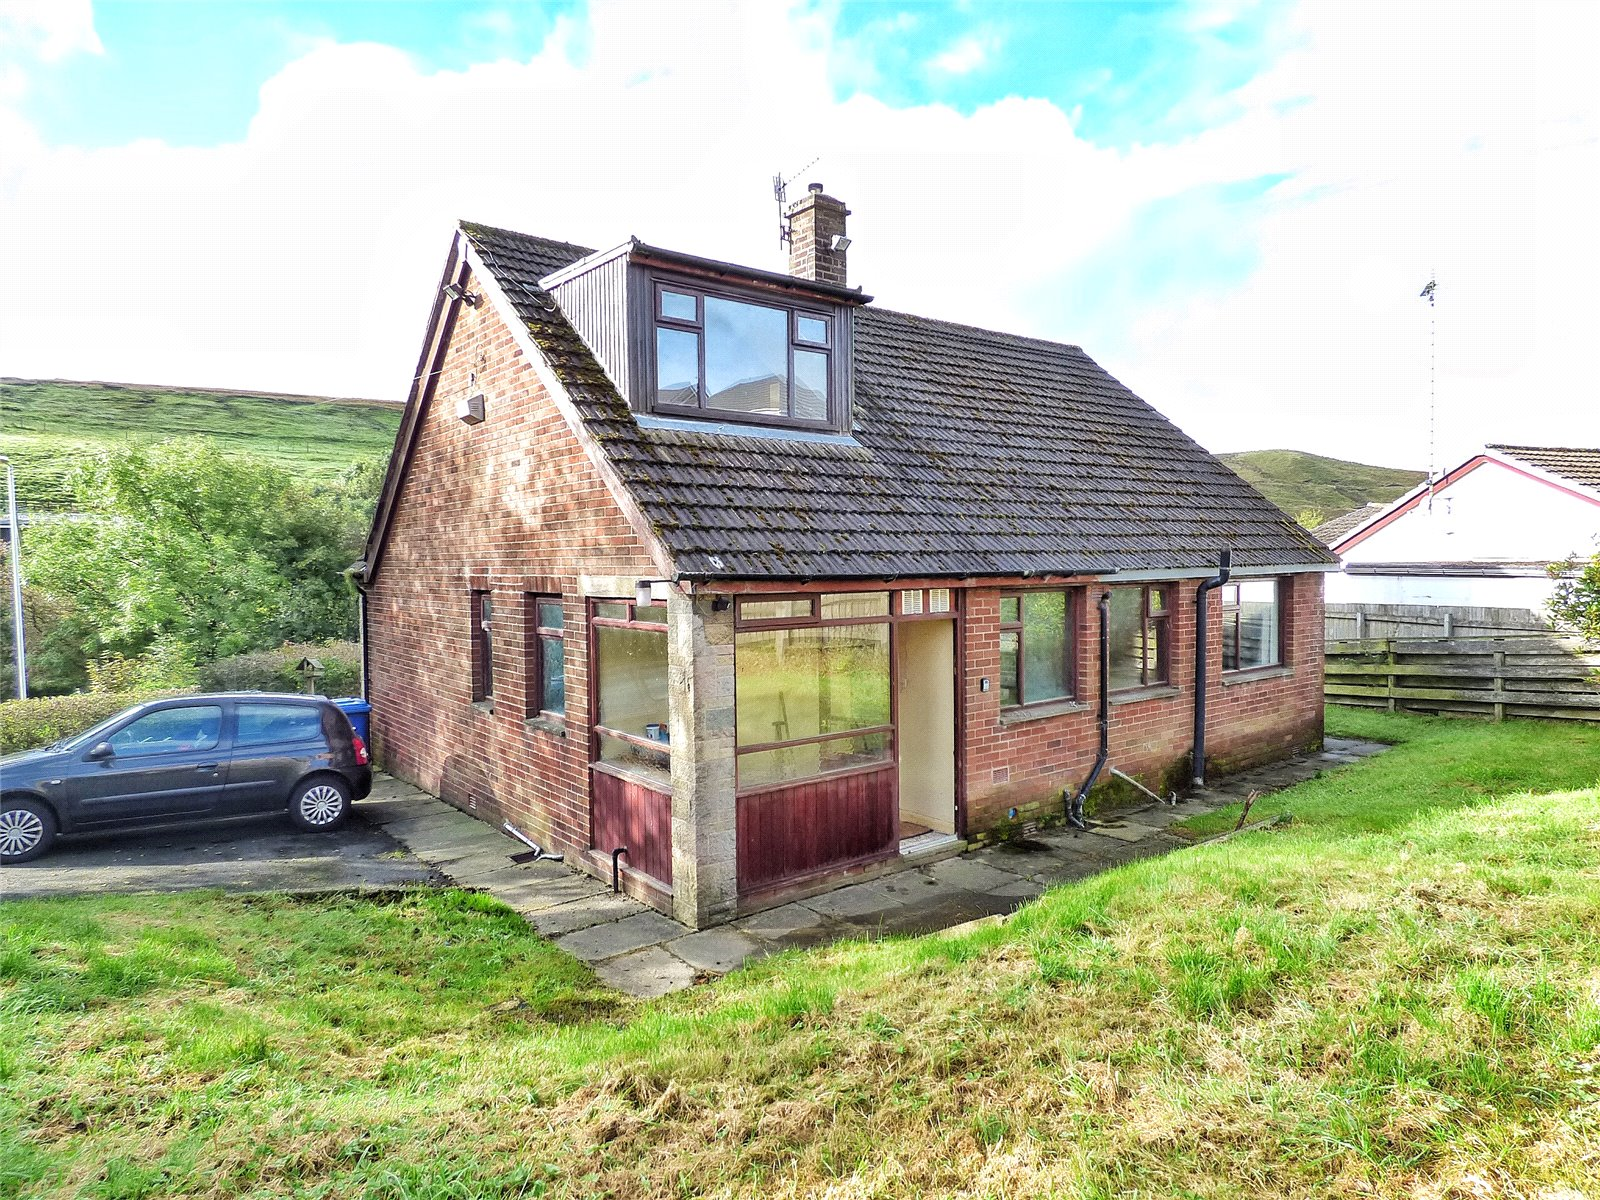 3 Bedrooms Detached Bungalow for sale in New Line, Bacup, Lancashire, OL13